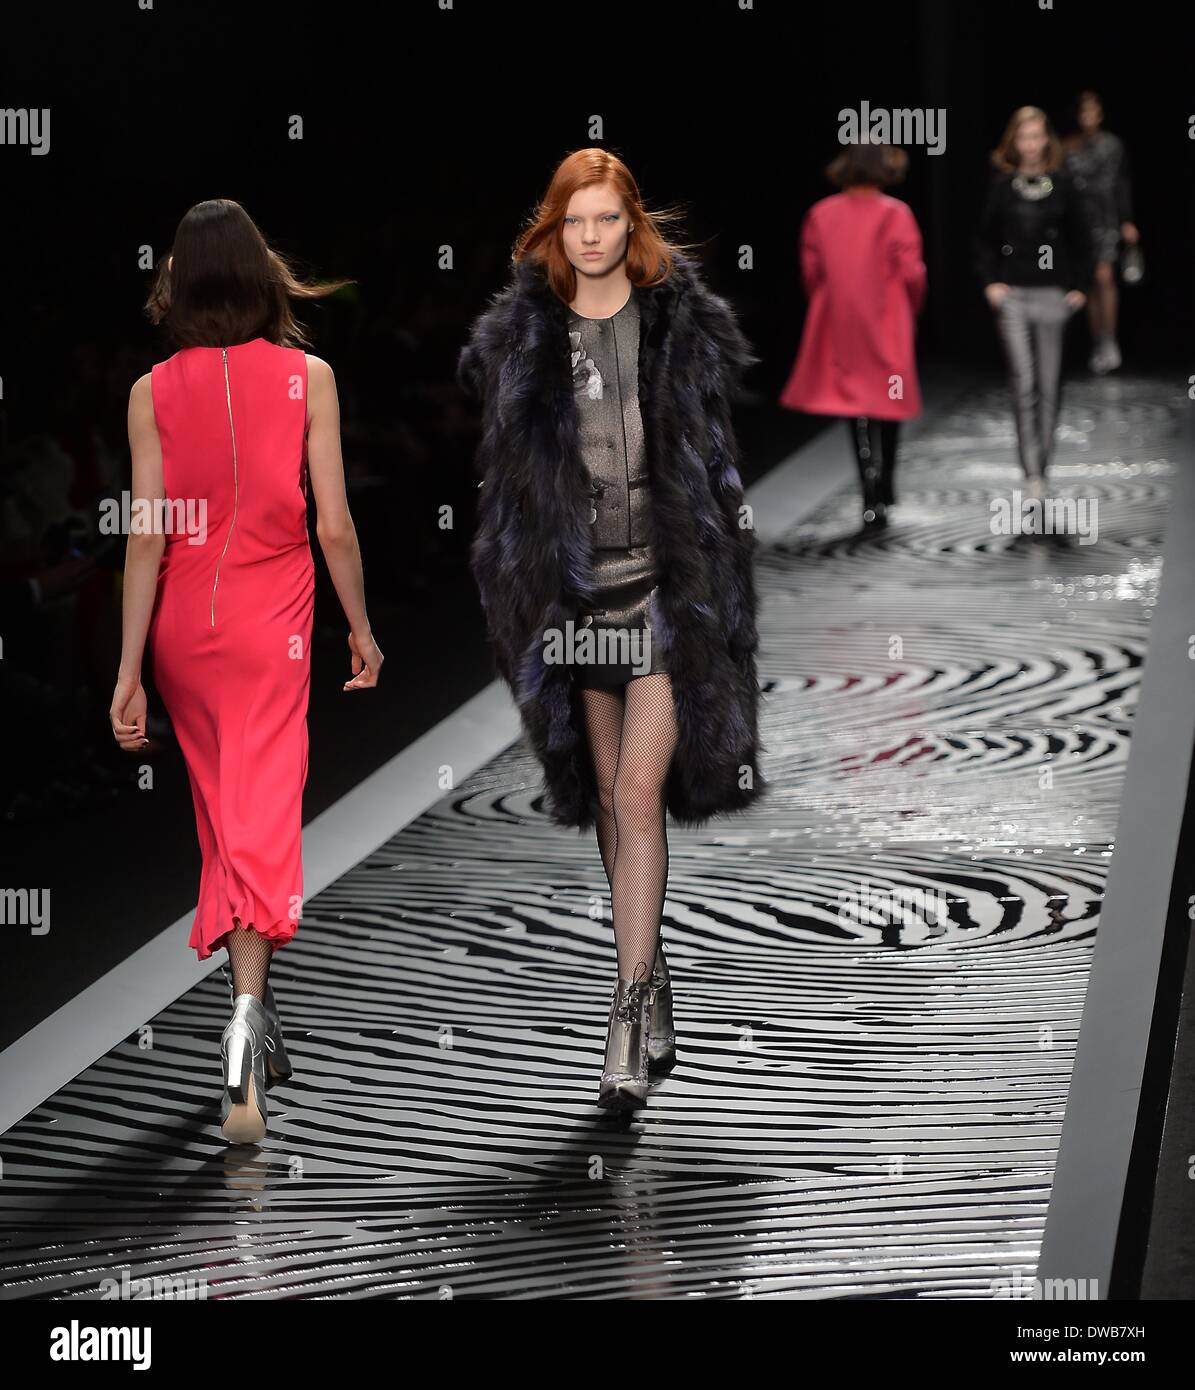 560bebf36dd 4th Mar, 2013. Models present creations by Shiatzy Chen as part of her  women's ready-to-wear Fall-Winter 2014/2015 collection during Paris Fashion  Week in ...